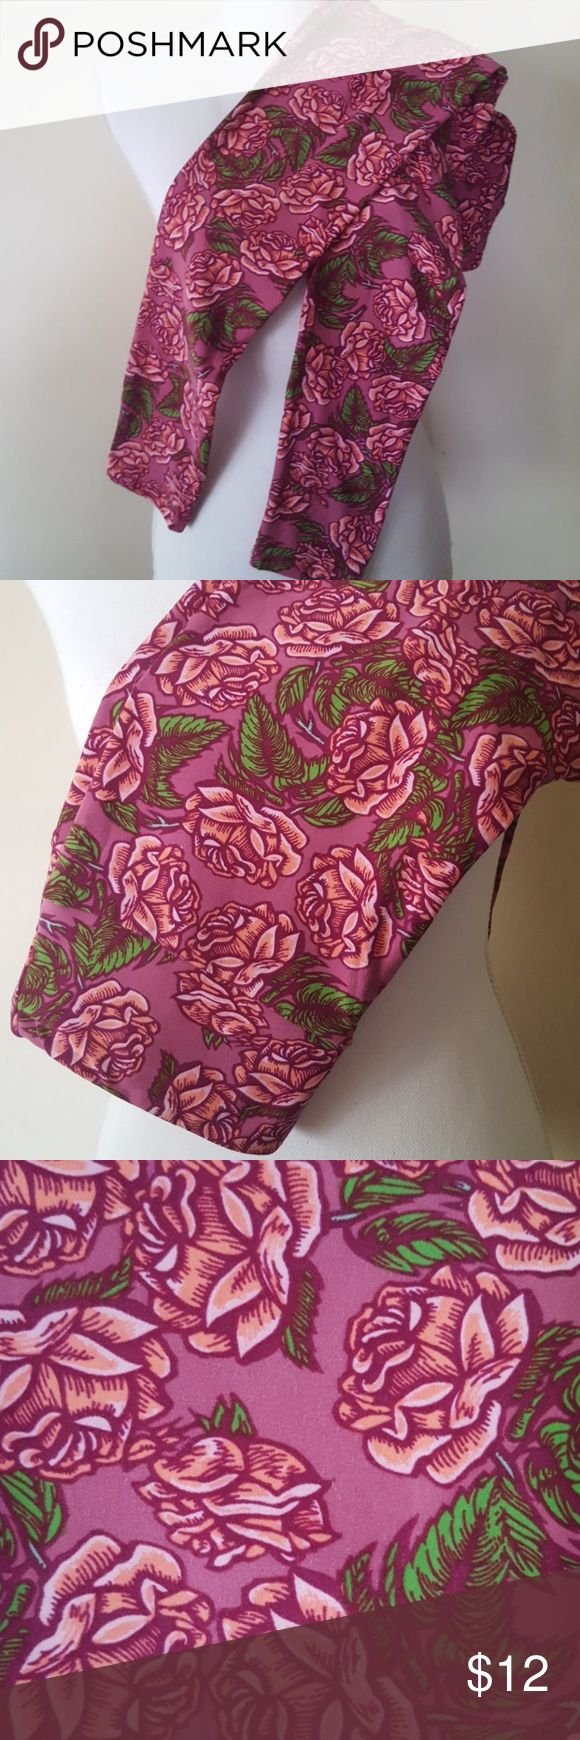 Lularoe Leggings Floral OS Lularoe Leggings Floral Deep Mauve/Pink/Green fabric of 92% polyester 8% spandex. Marked size OS/One Size. Pre owned EUC. Please review pics. Thanks! Lularoe Pants Leggings